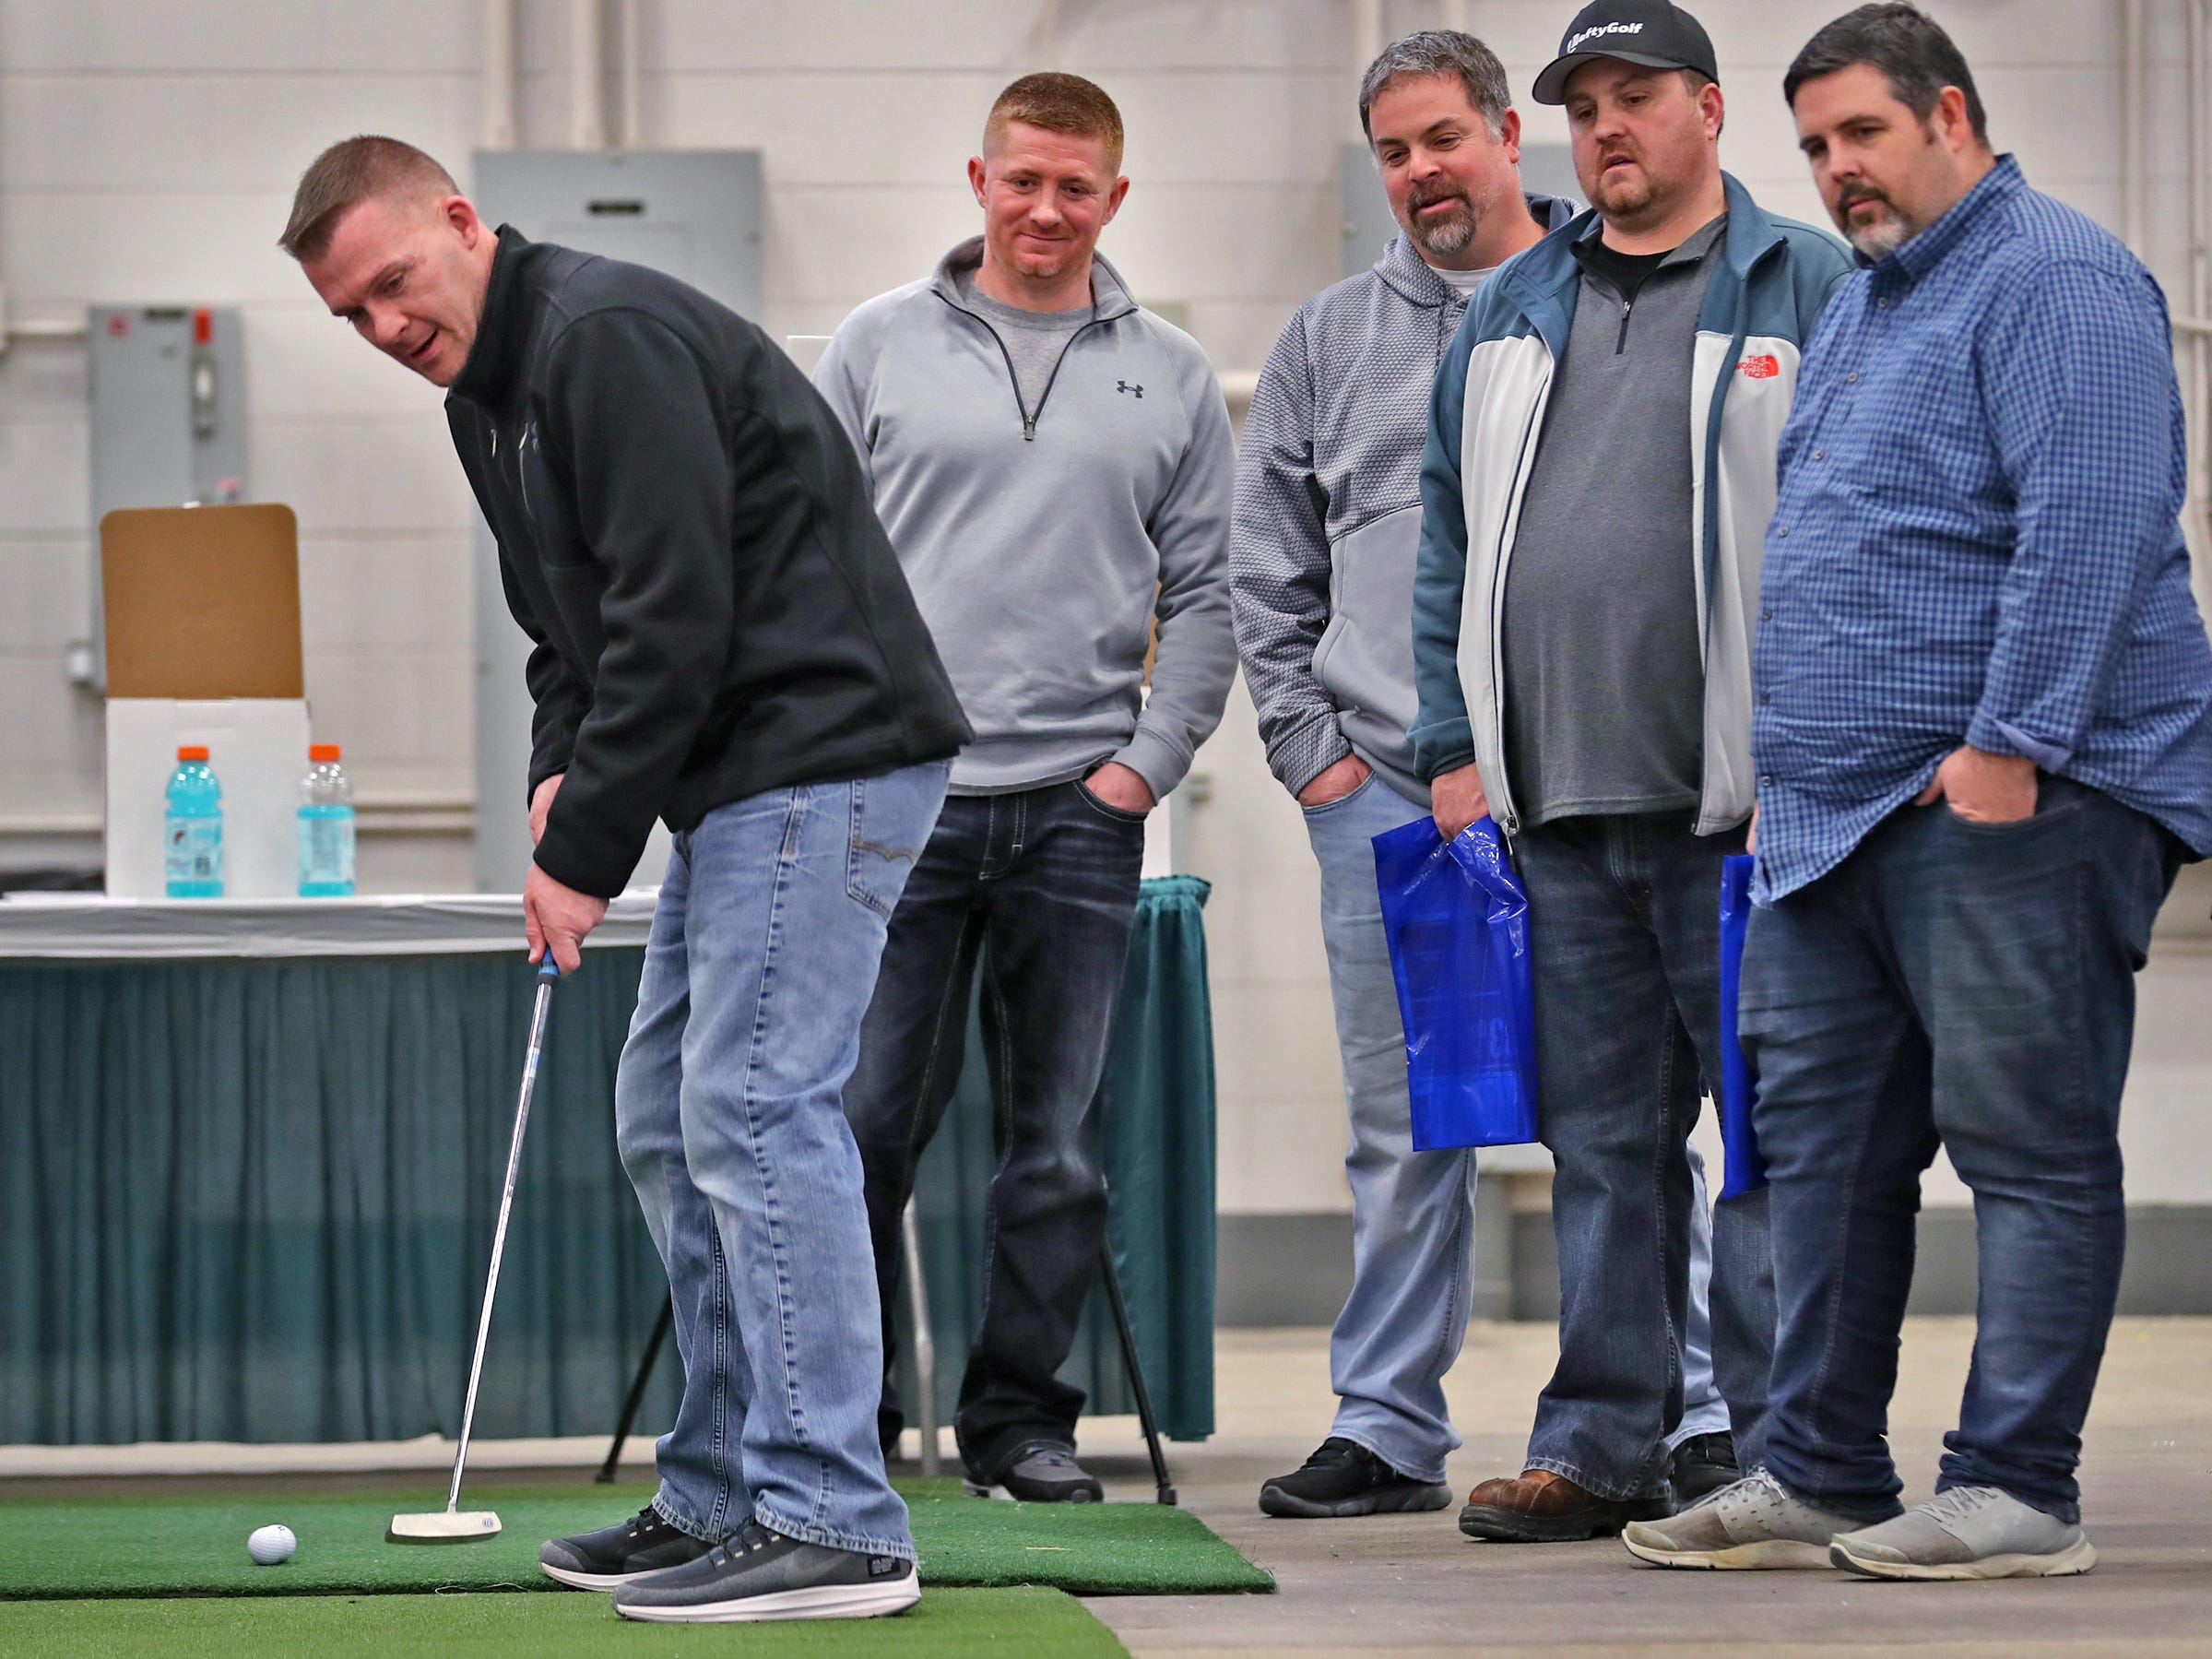 Dusty Massengale, left, tries his hand at putting as friends watch closely, during the Indy Golf Expo at the Indiana State Fairgrounds, Sunday, Jan. 20, 2019.